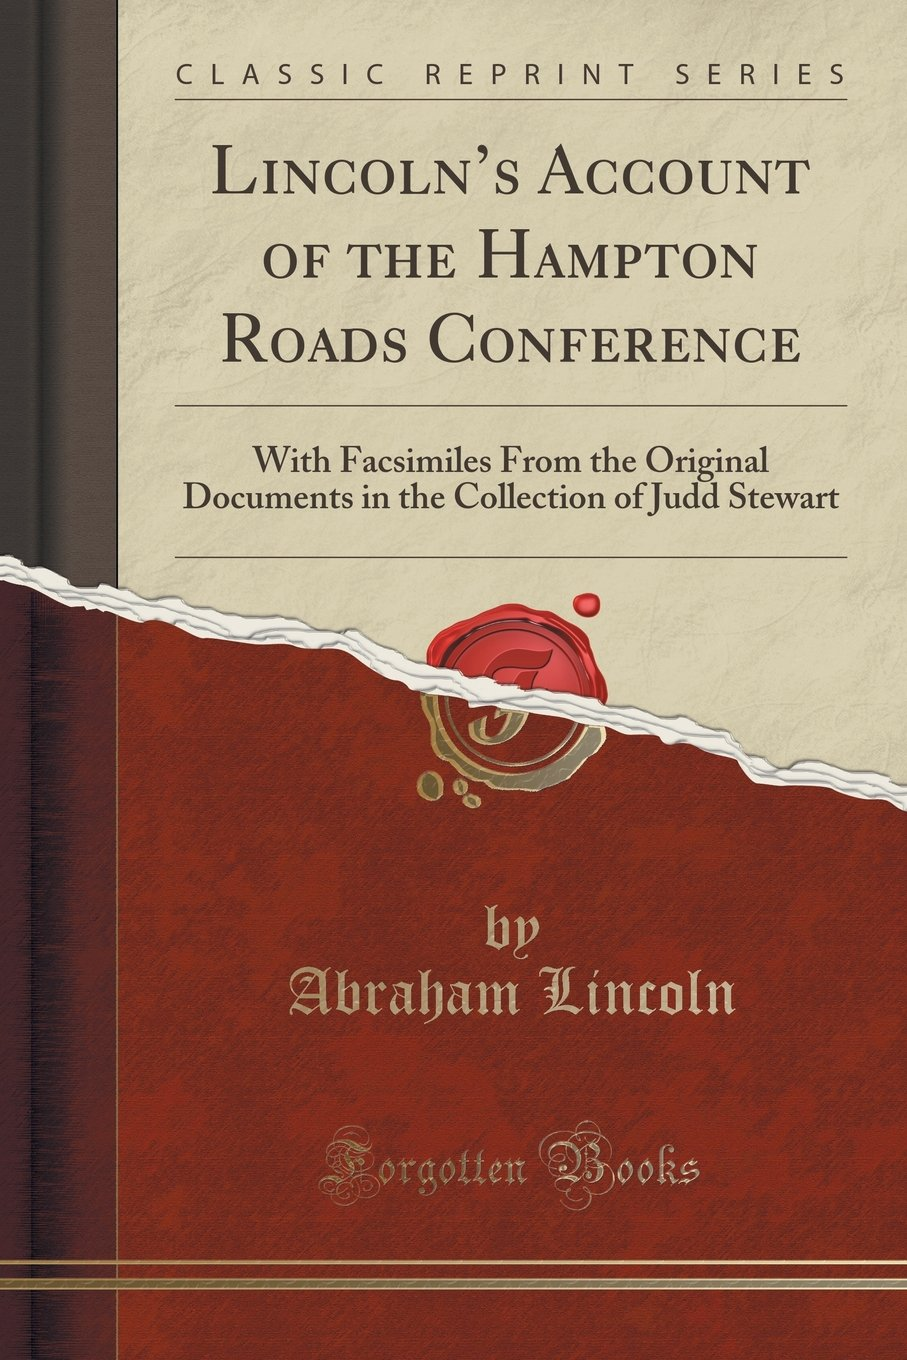 Download Lincoln's Account of the Hampton Roads Conference: With Facsimiles From the Original Documents in the Collection of Judd Stewart (Classic Reprint) pdf epub